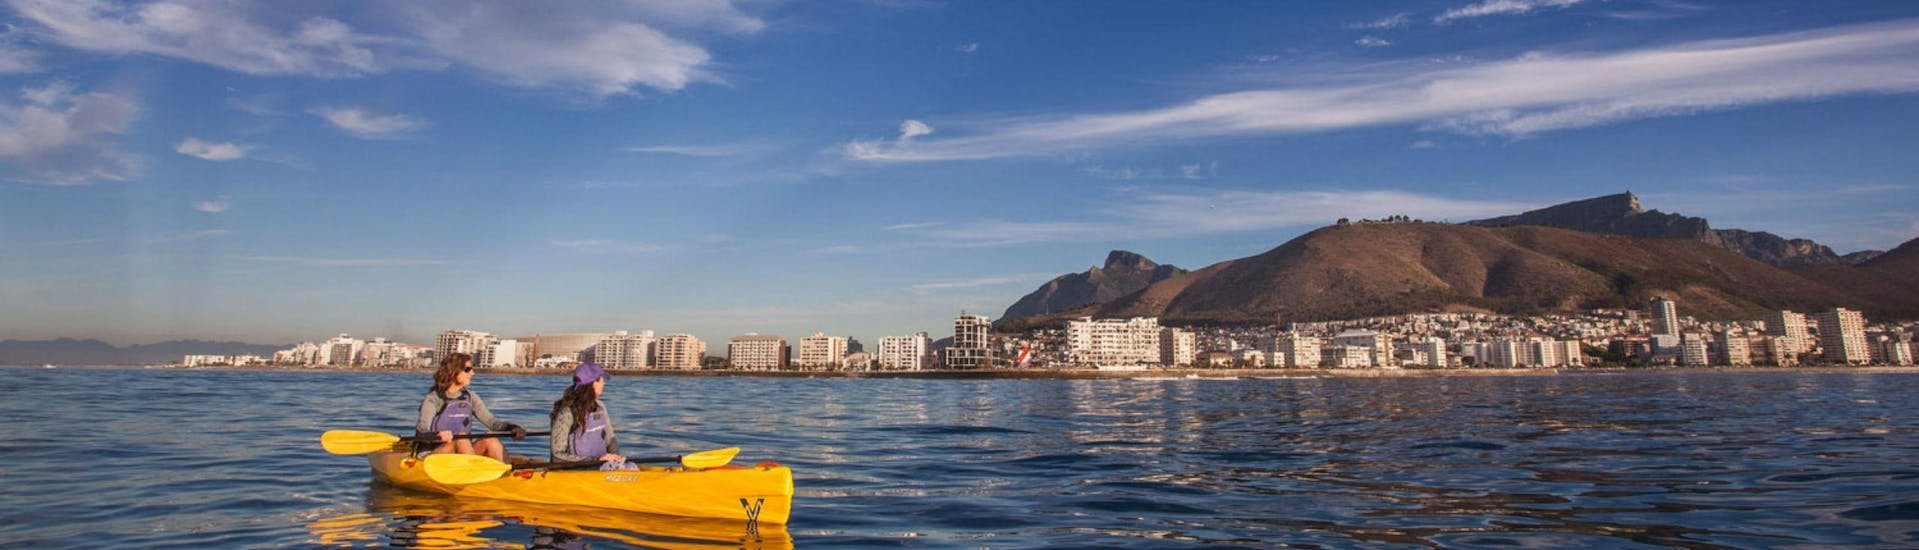 Two women are sea kayaking off the coast of Cape Town, a popular activity offered by Gravity Adventures.